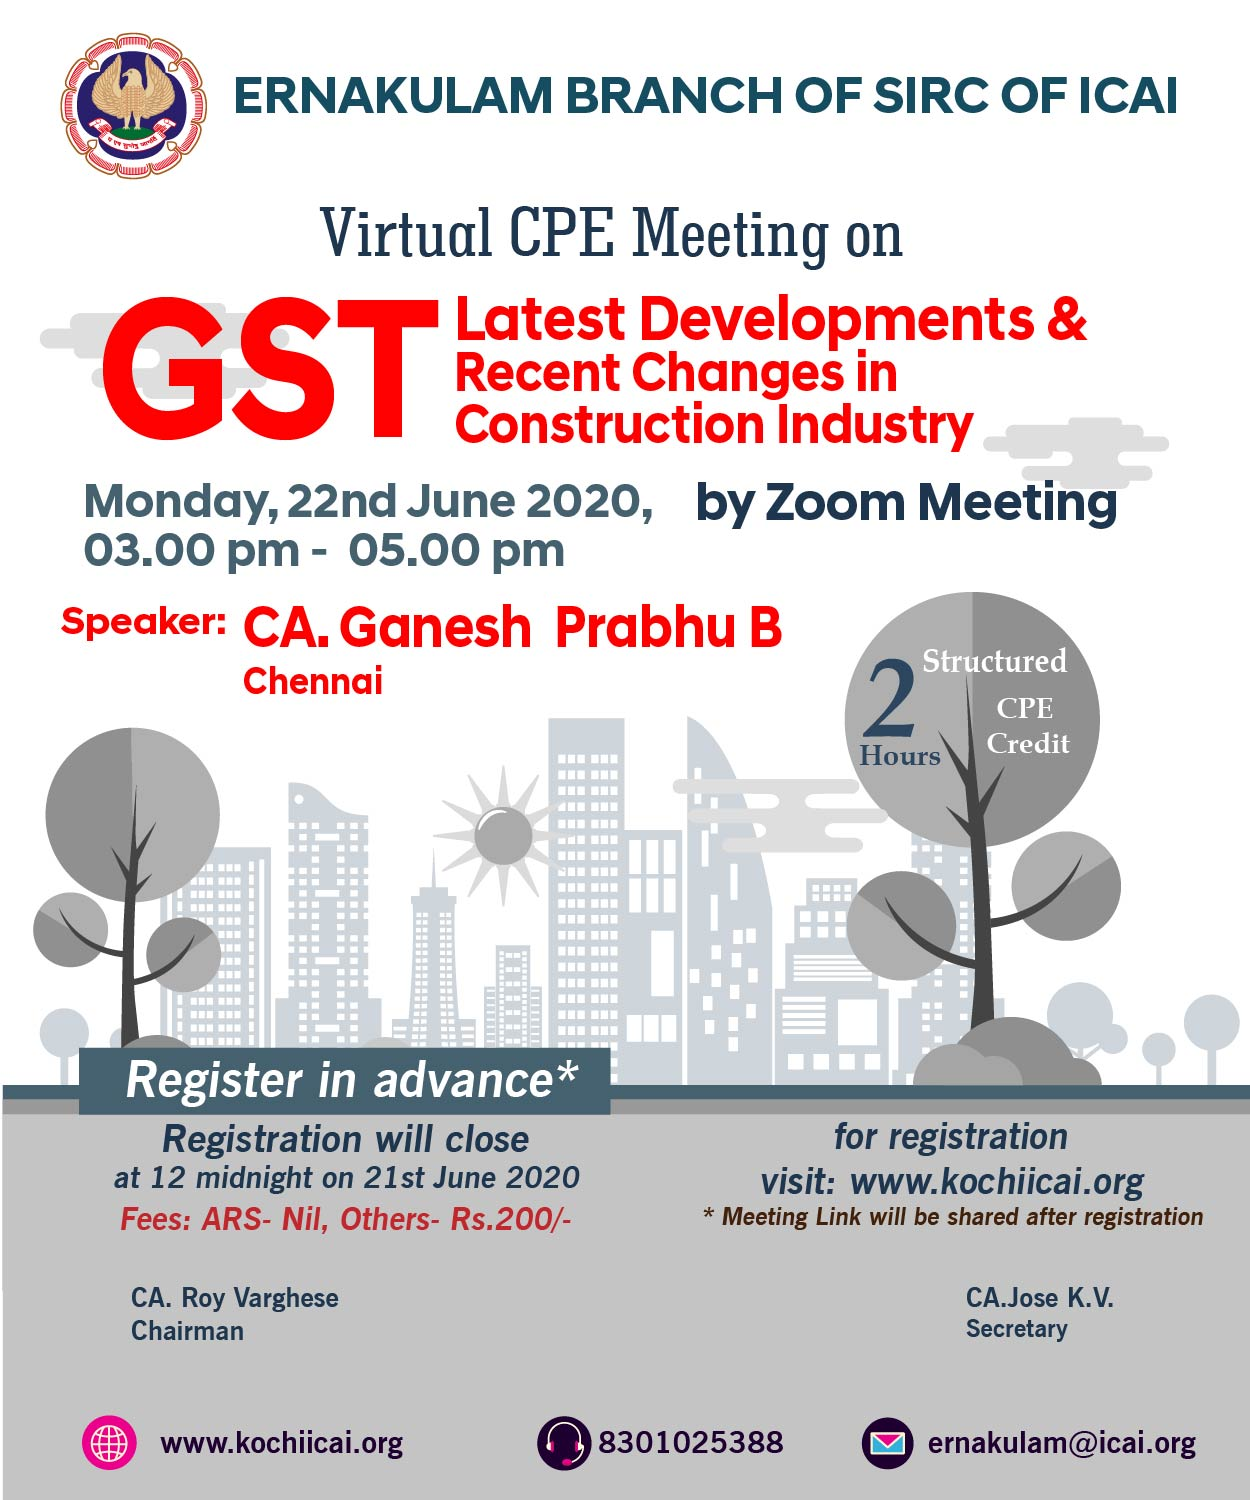 Virtual CPE Meeting on GST -Latest Developments & Recent Changes in Construction Industry